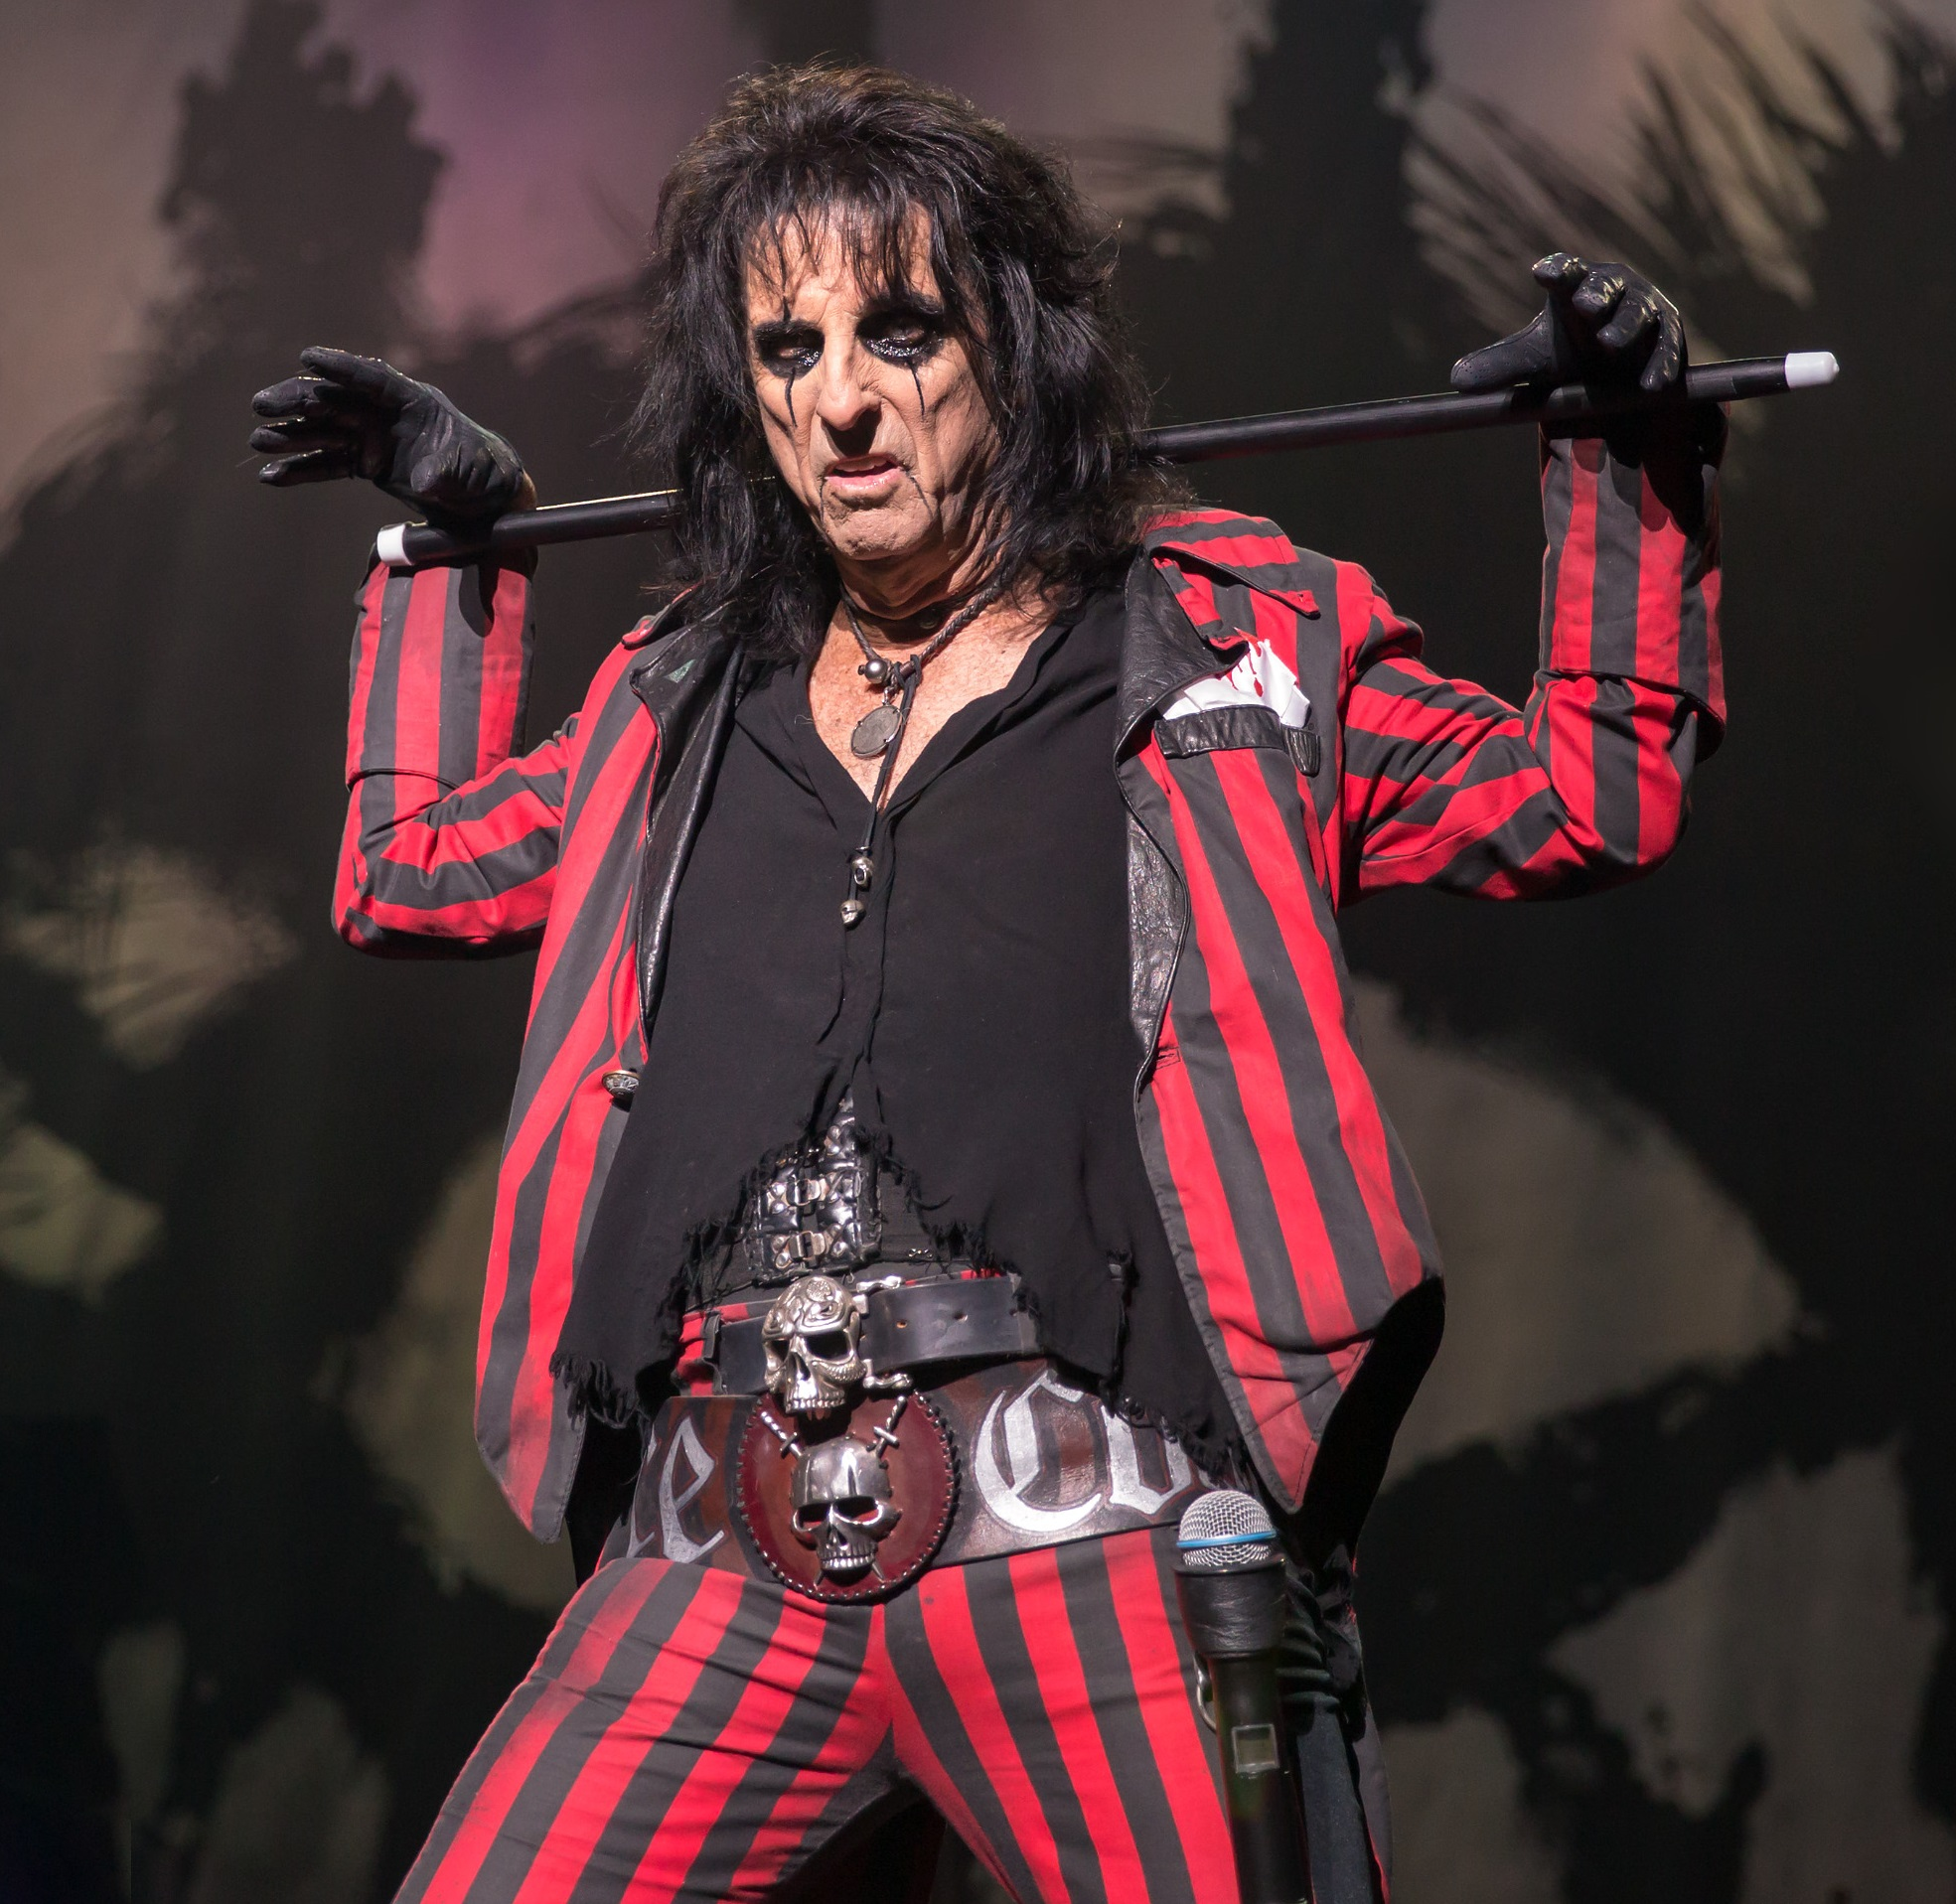 Alice cooper pa grona lund stockholm